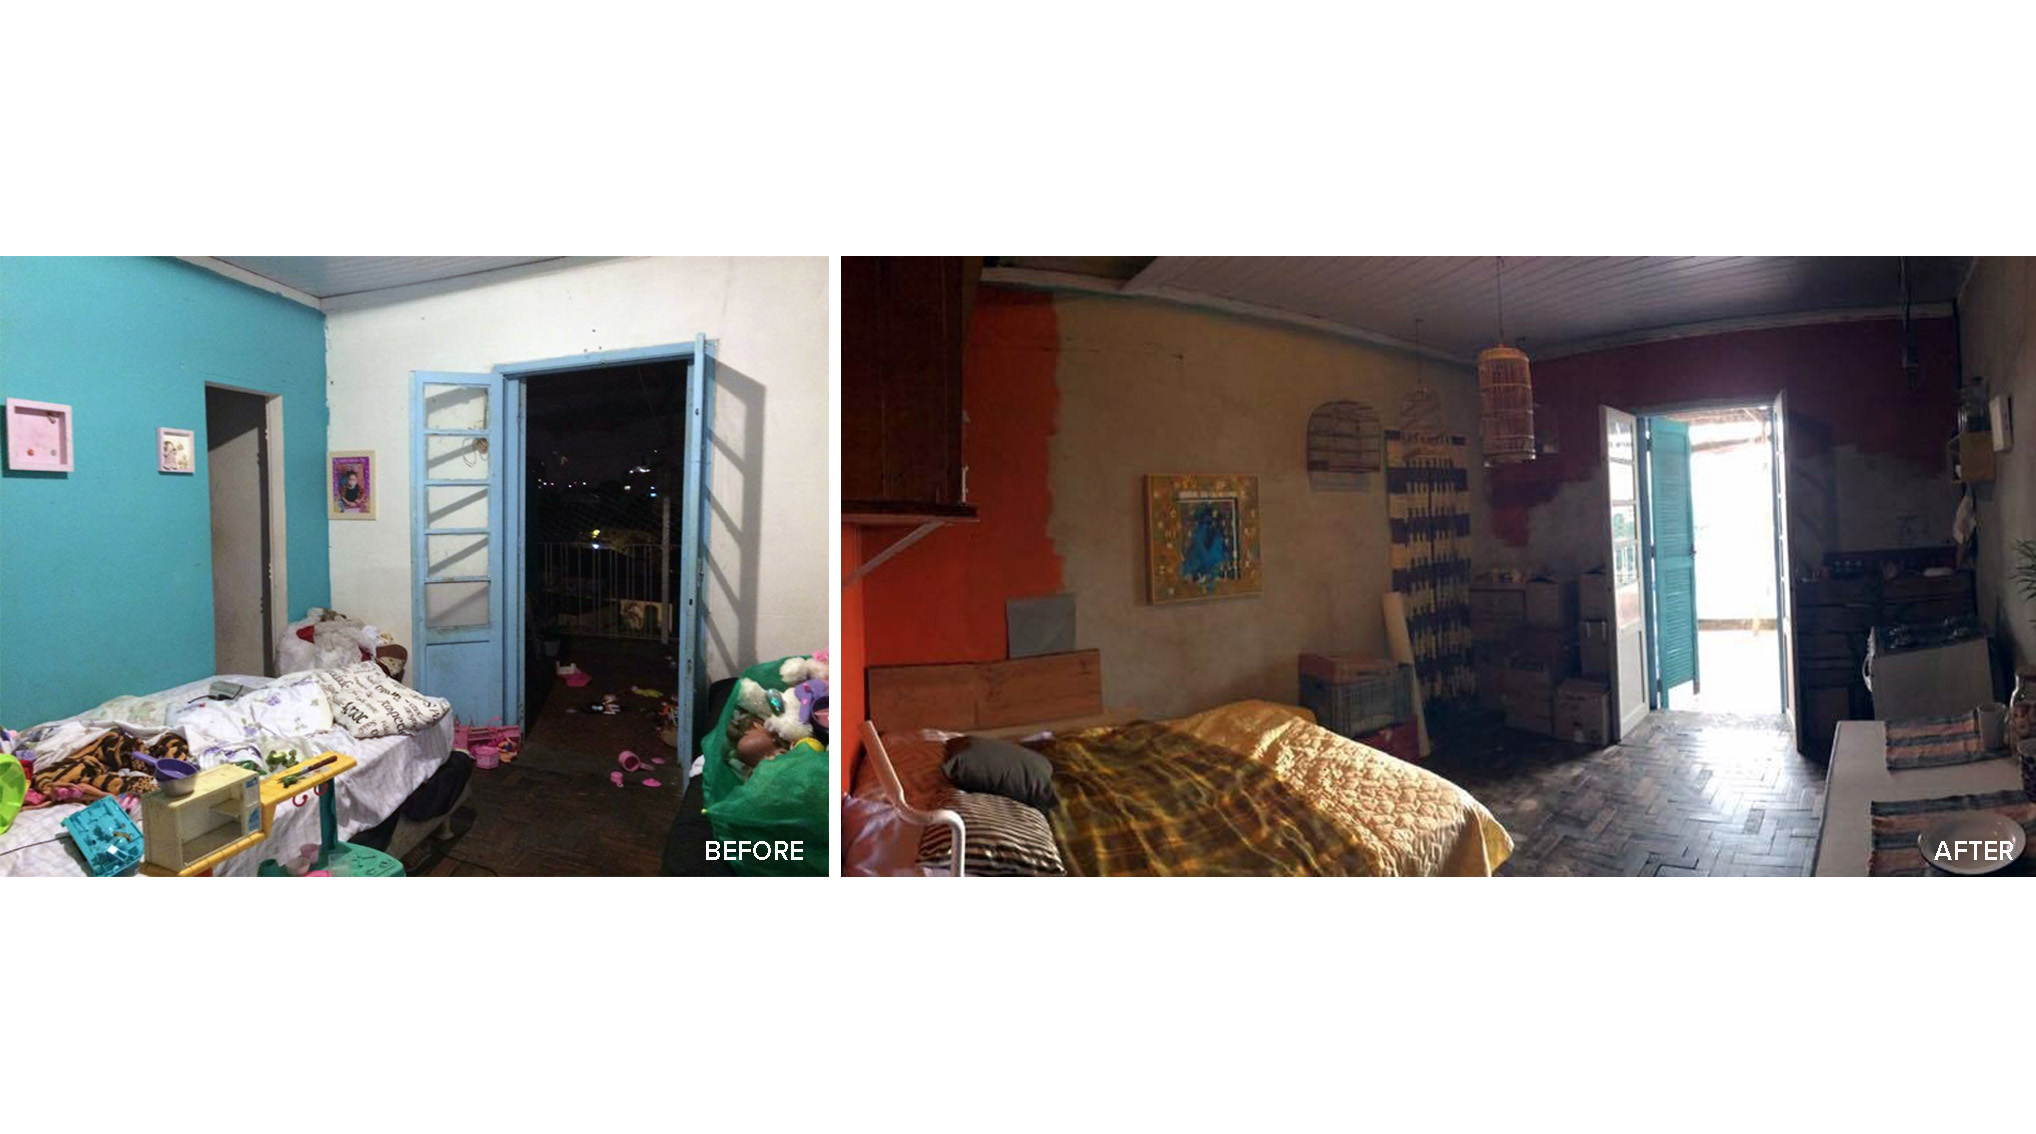 Paraisopolis_Before+After+2_Texto.jpg